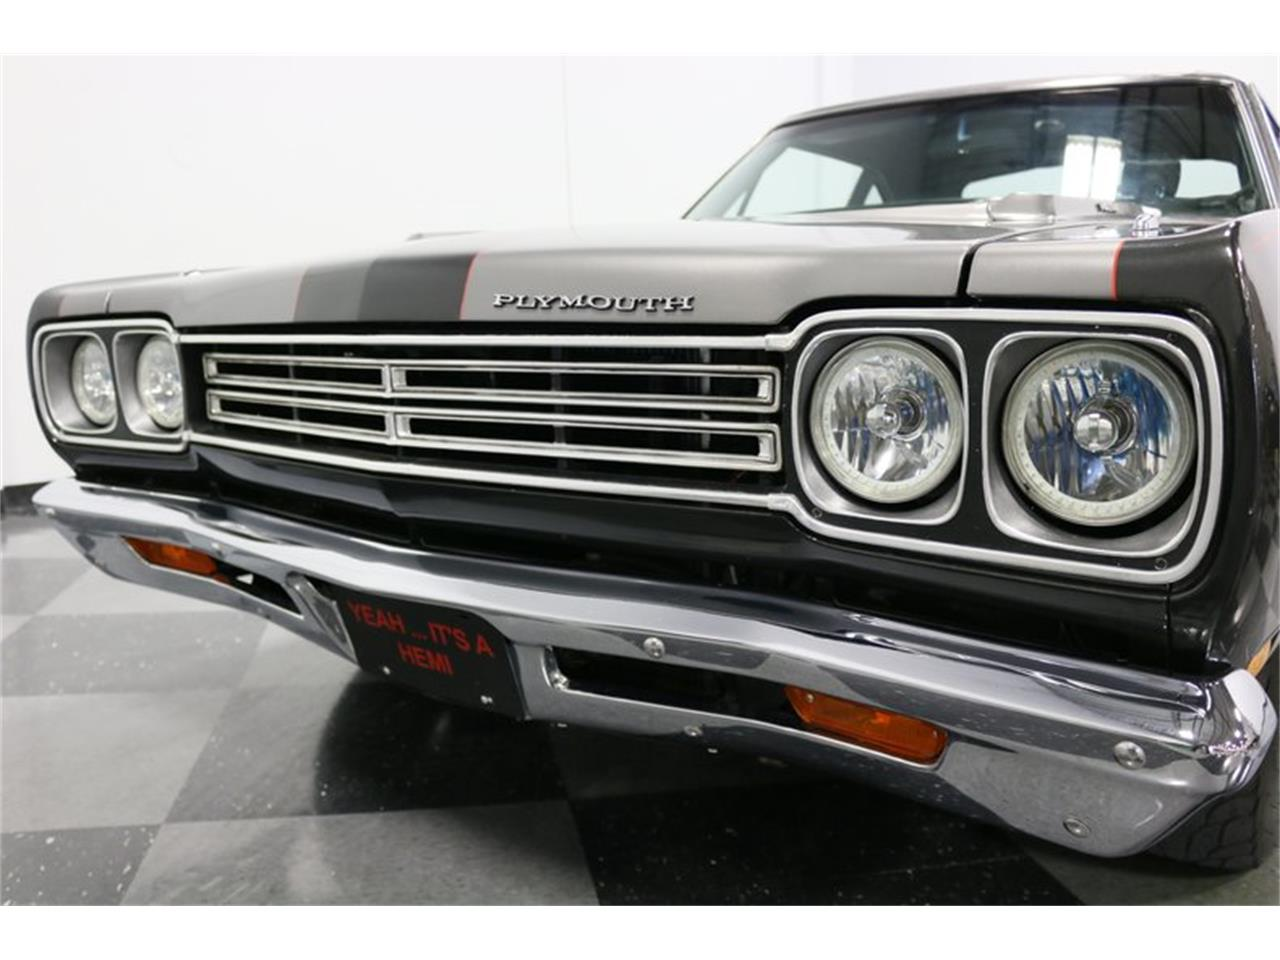 Large Picture of 1969 Road Runner located in Ft Worth Texas Offered by Streetside Classics - Dallas / Fort Worth - PJ6W